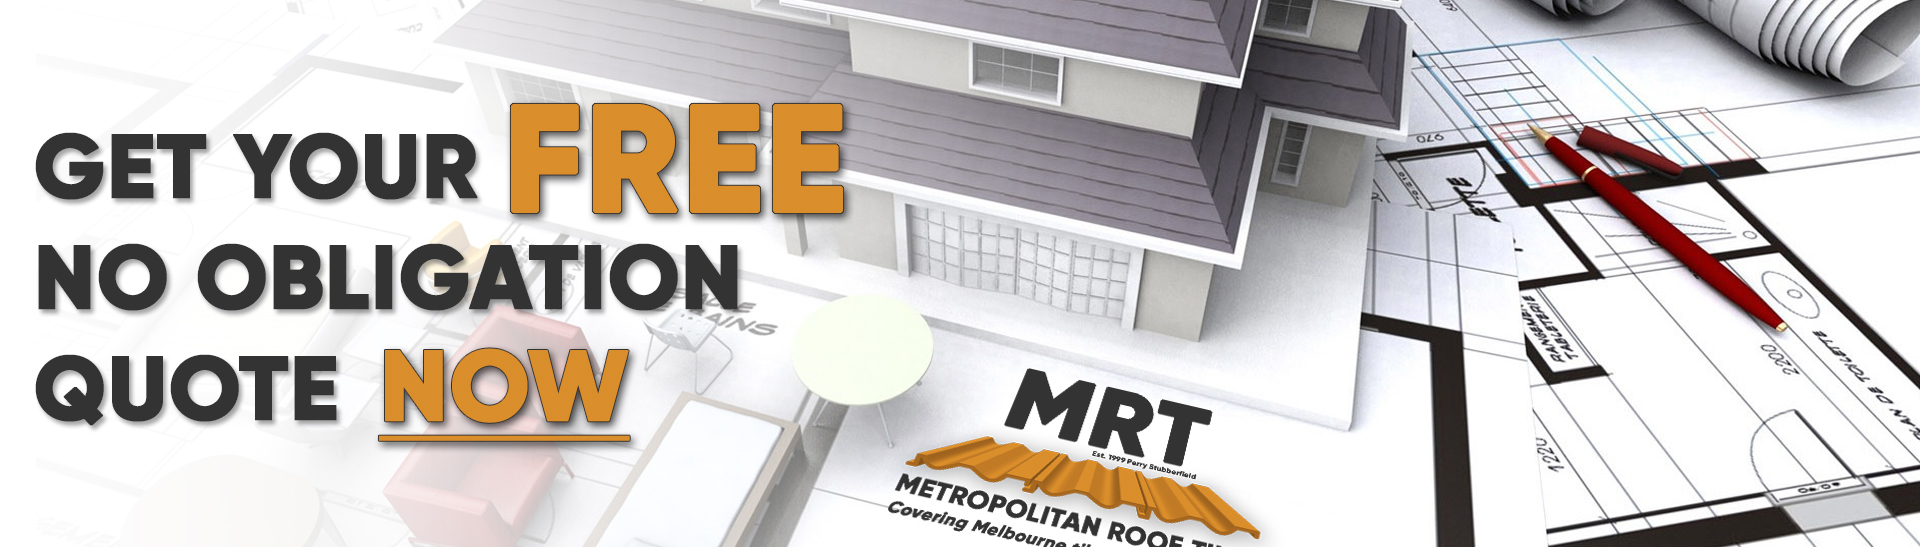 MRT Free Quote Slider